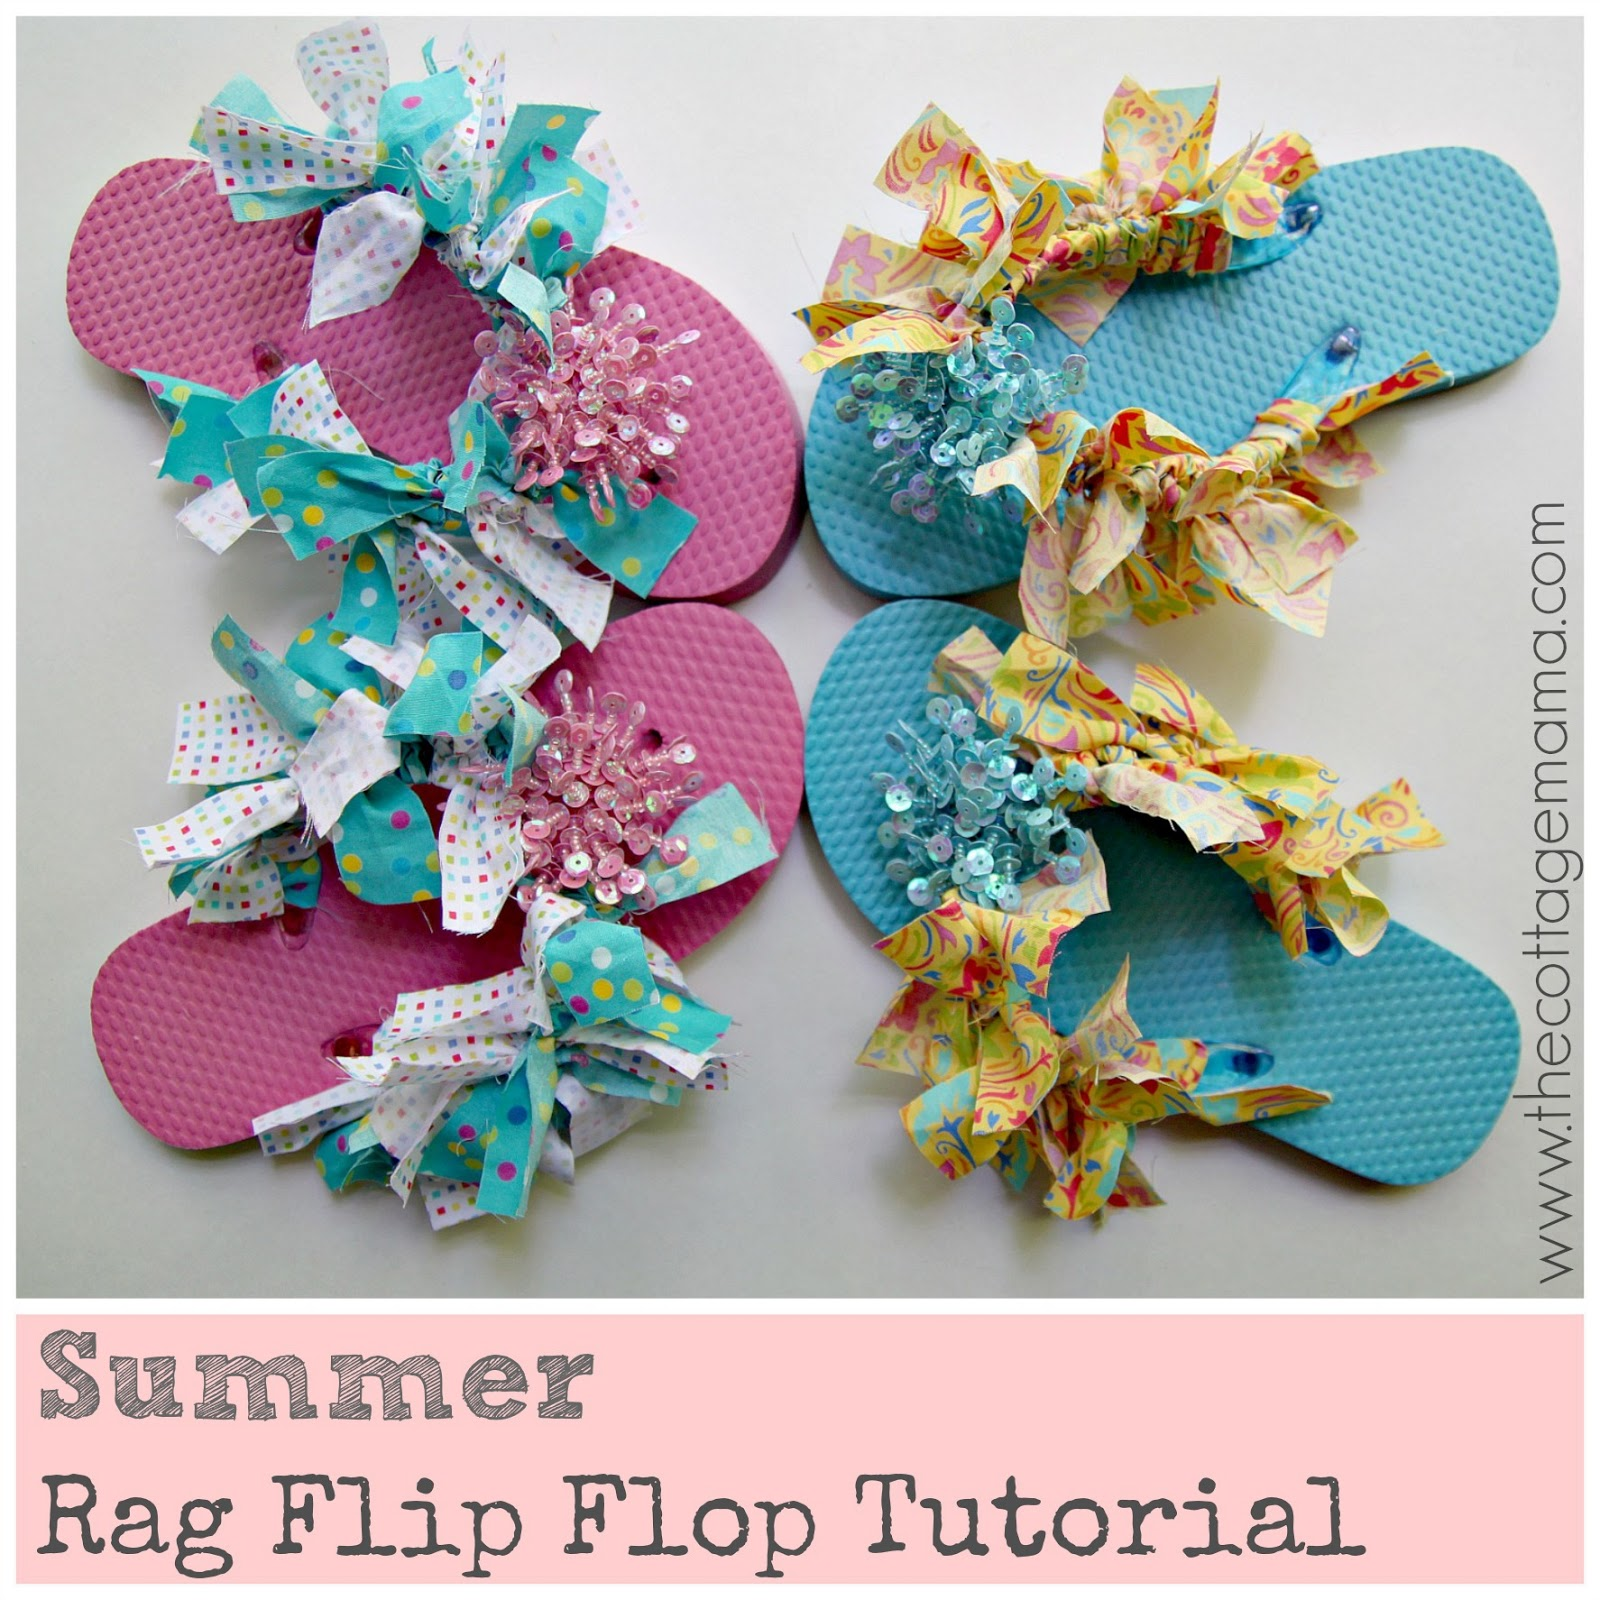 852c7c52d7a088 Summer Rag Flip Flop Tutorial. So it s finally summer around here and I was  asked by the folks at Joann Fabric and Craft stores to come up with a  summer ...